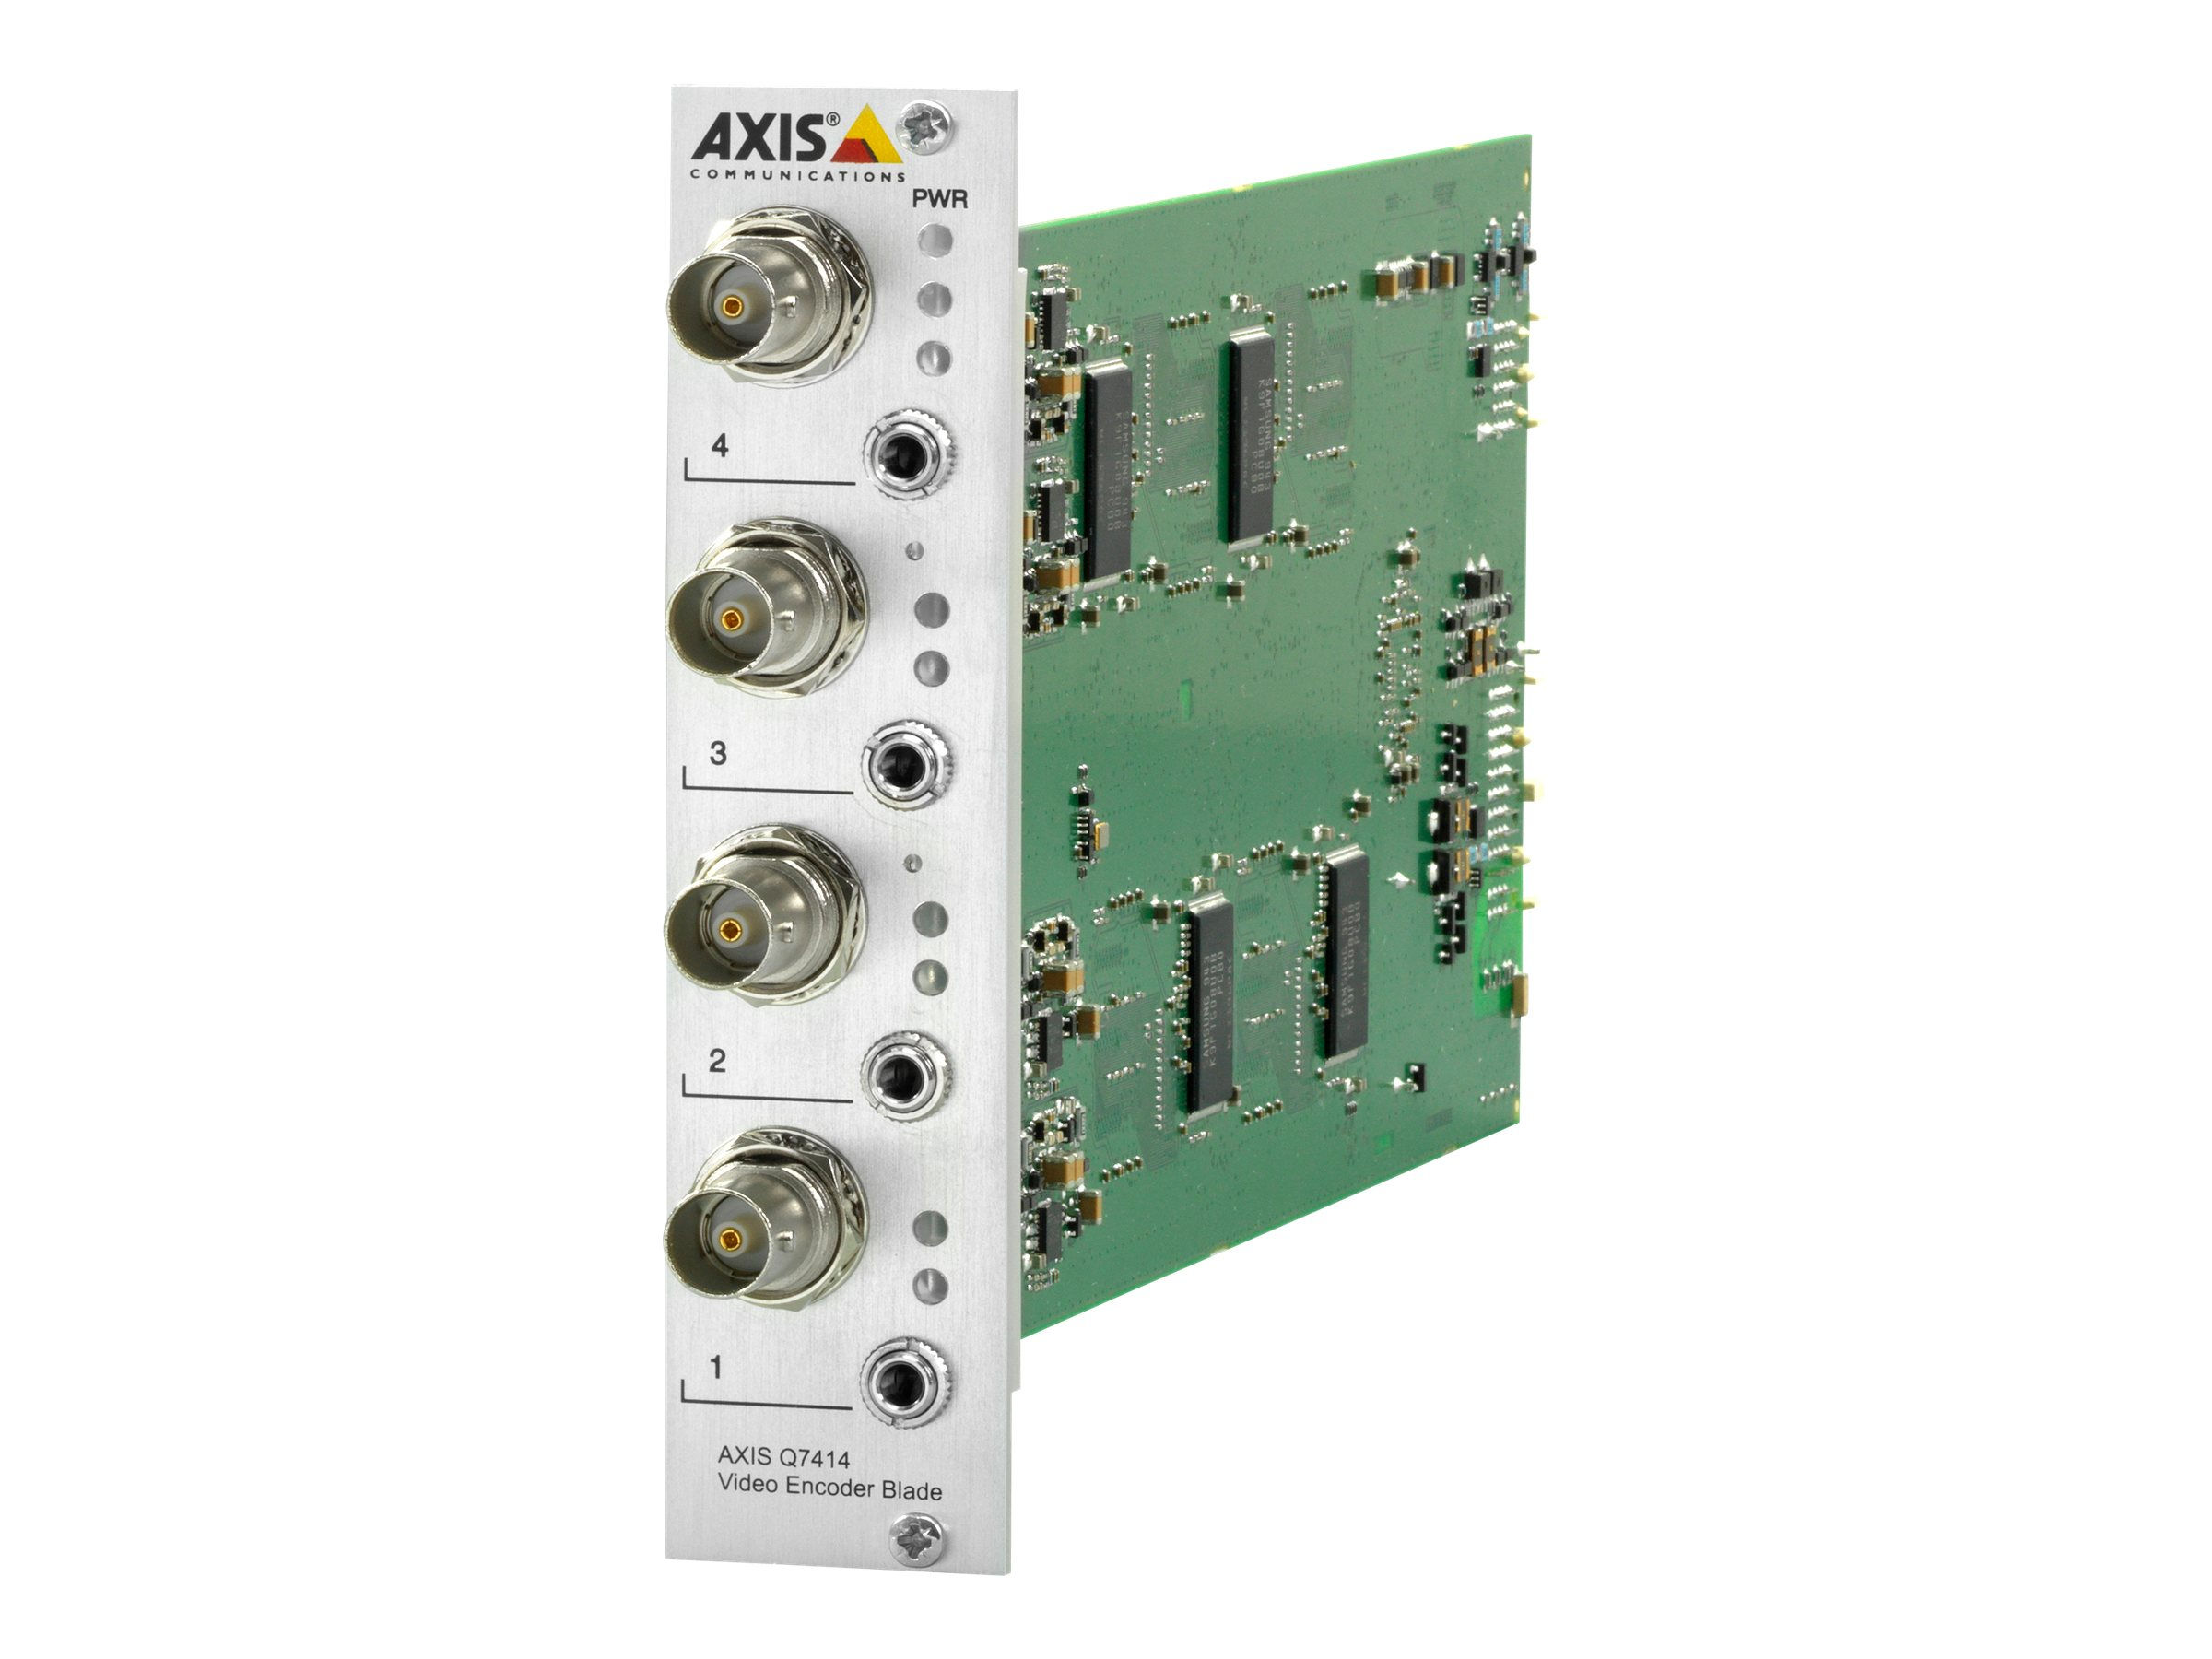 Axis Q7414 Video Encoder Blade, 0354-001, 18181778, Video Capture Hardware